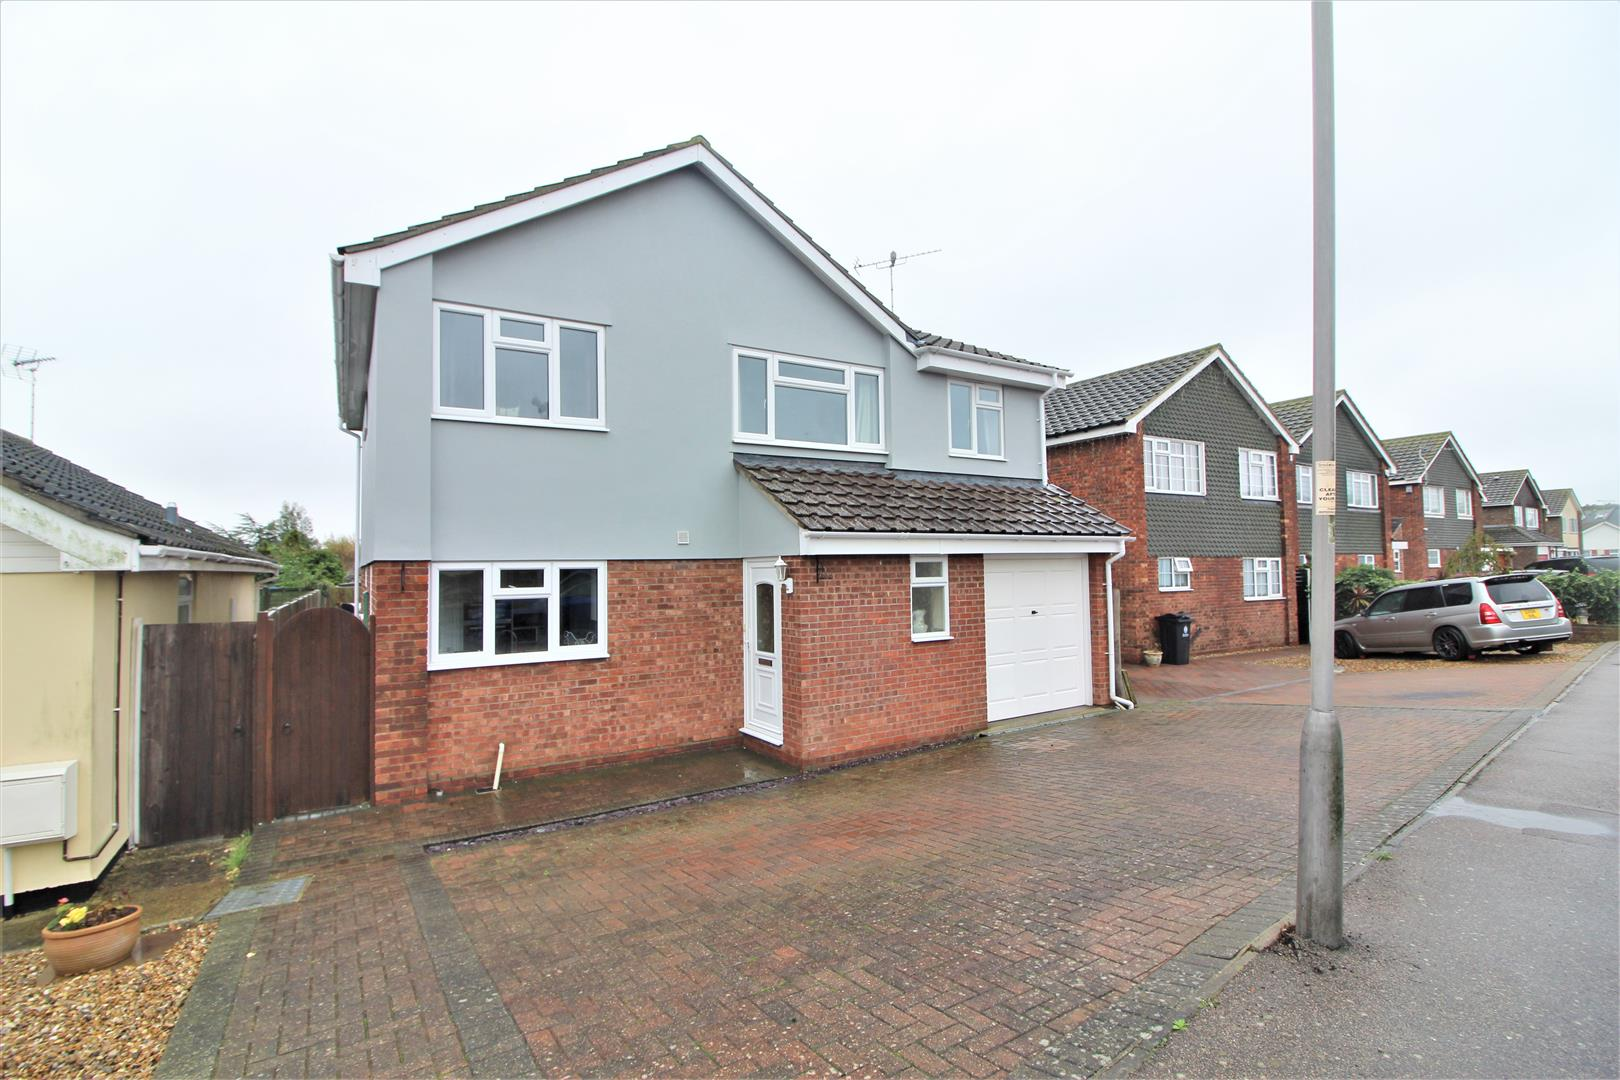 Beaumont Close, Walton On The Naze, Essex, CO14 8TX